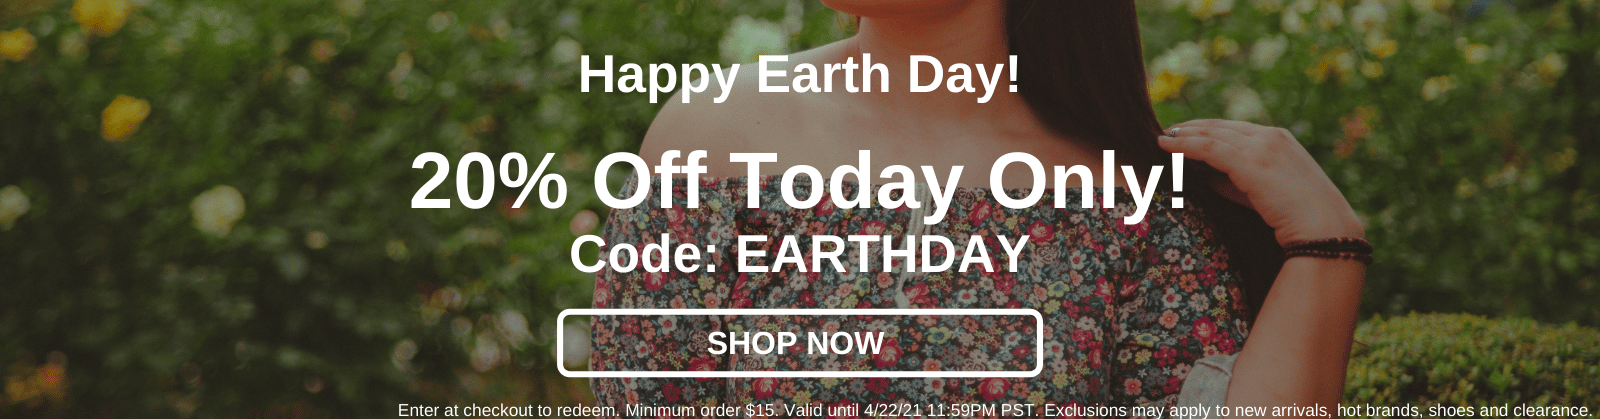 Happy Earth Day! 20% Off Today Only! Code: EARTHDAY [Shop Now]